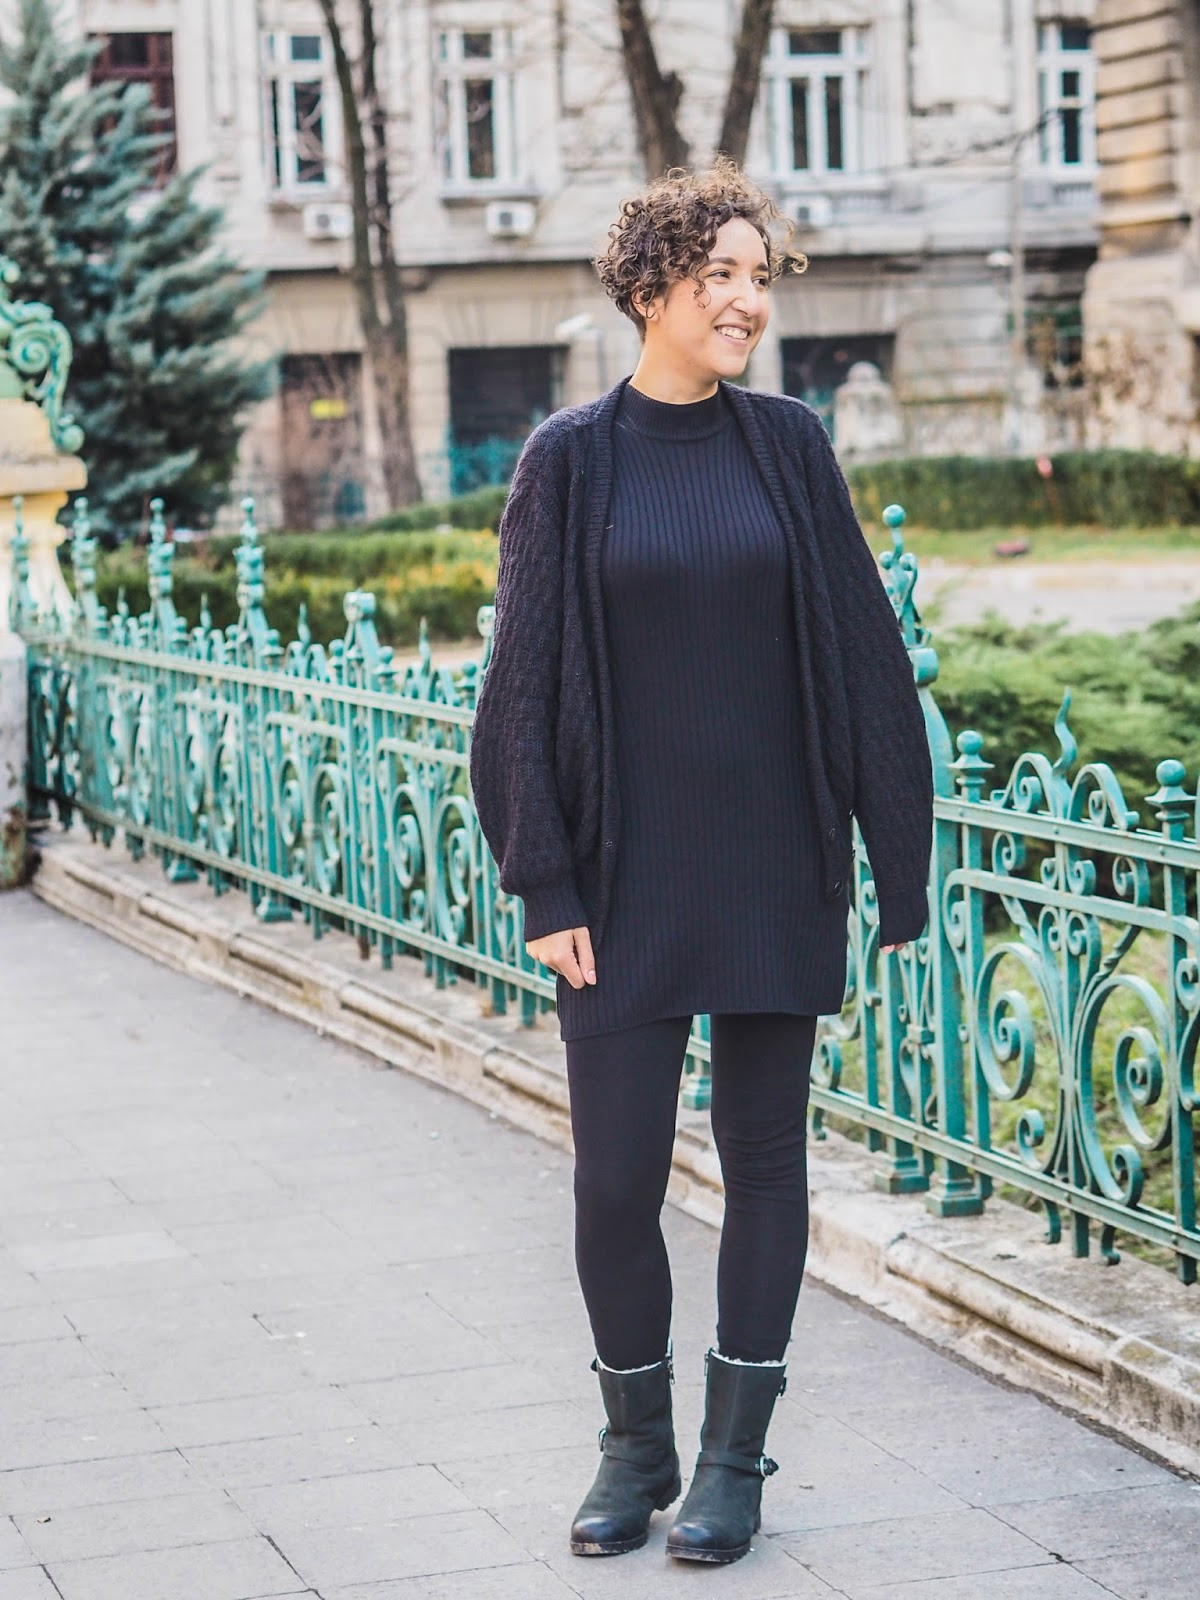 Fashion blogger wearing black dress, black cardigan, black boots